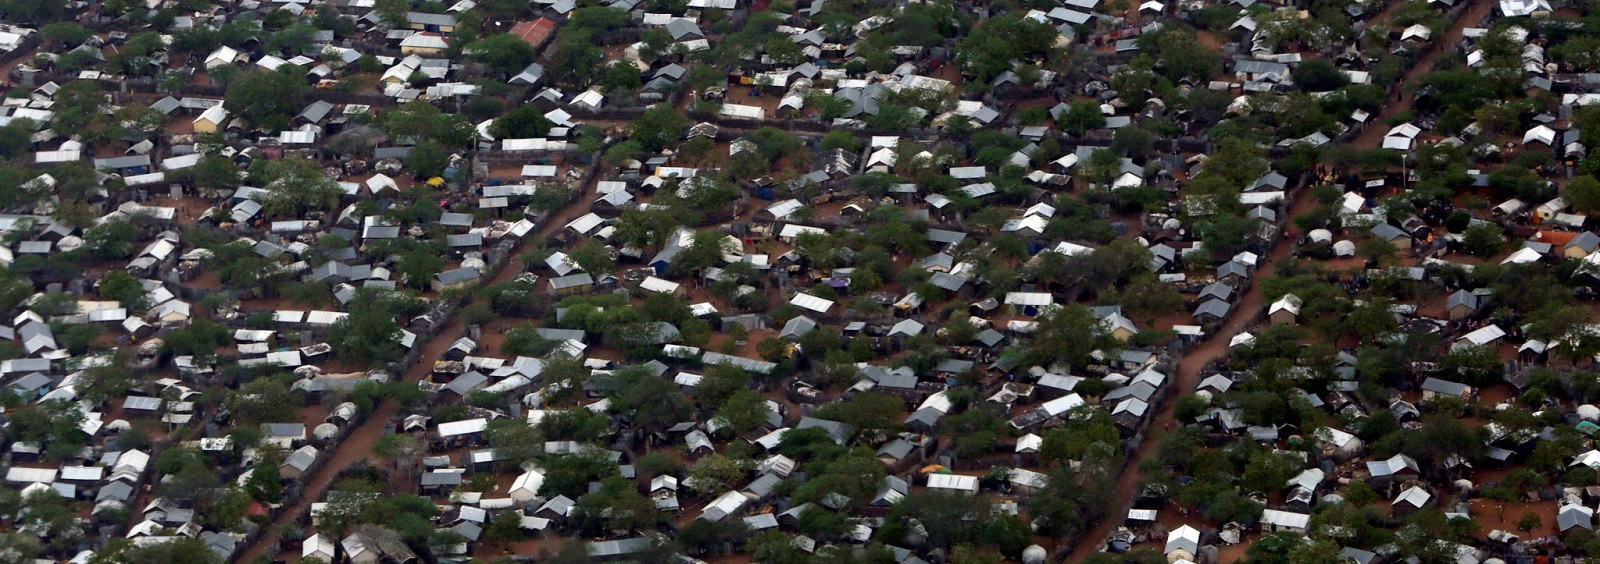 Aerial Views of Ifo 2 Refugee Camp in Dadaab, Kenya (Photo: Flickr/United Nations)